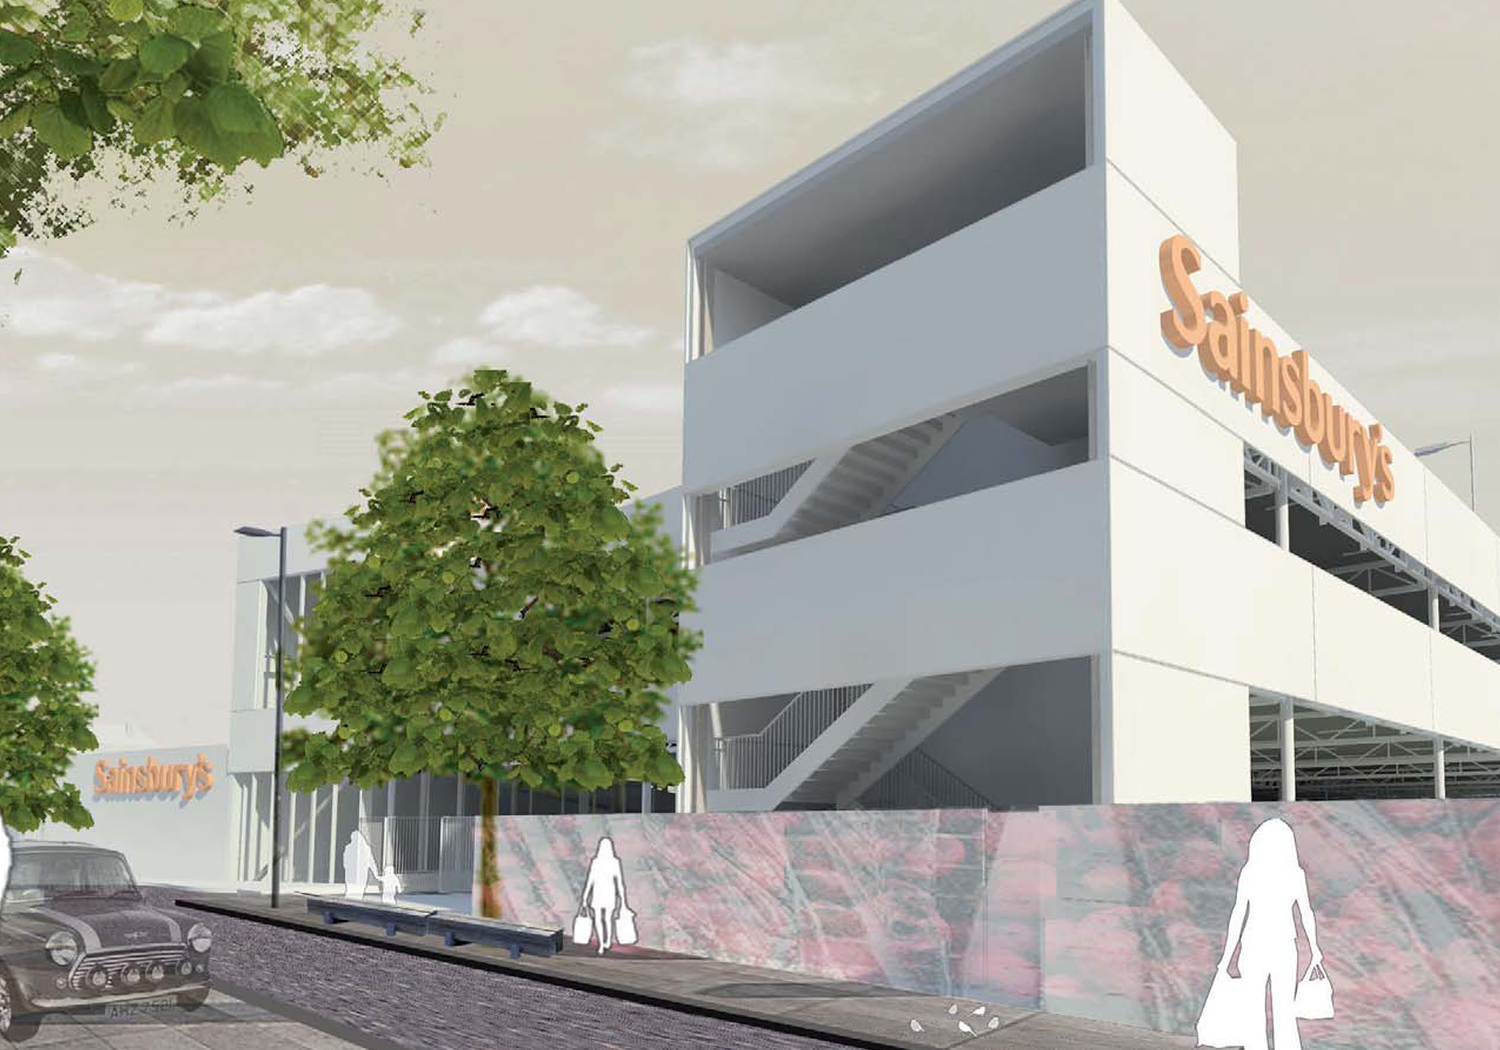 Projects-CommInd-SainsWhiteCh-SketchUp-1500x1050